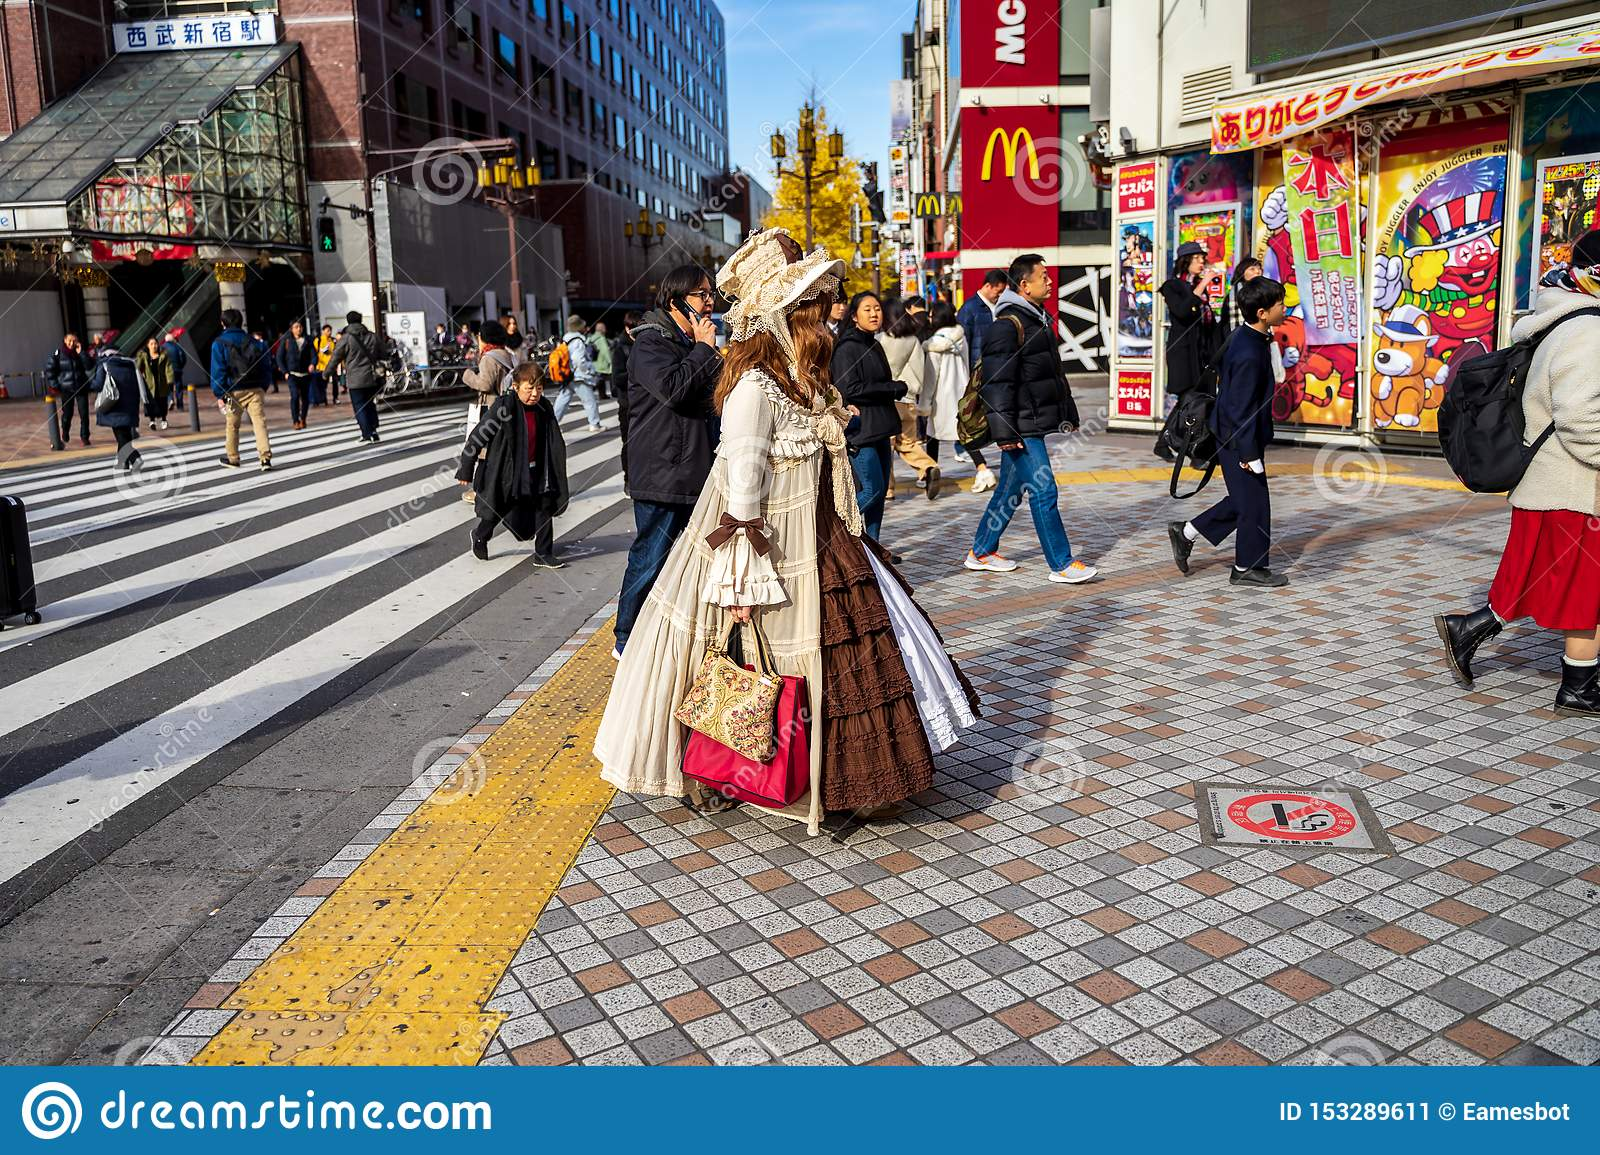 Shinjuku, Tokyo, Japan - December 26, 2018: Beautiful girl with crossplay suit waling in the crowd pedestrians people. Famous